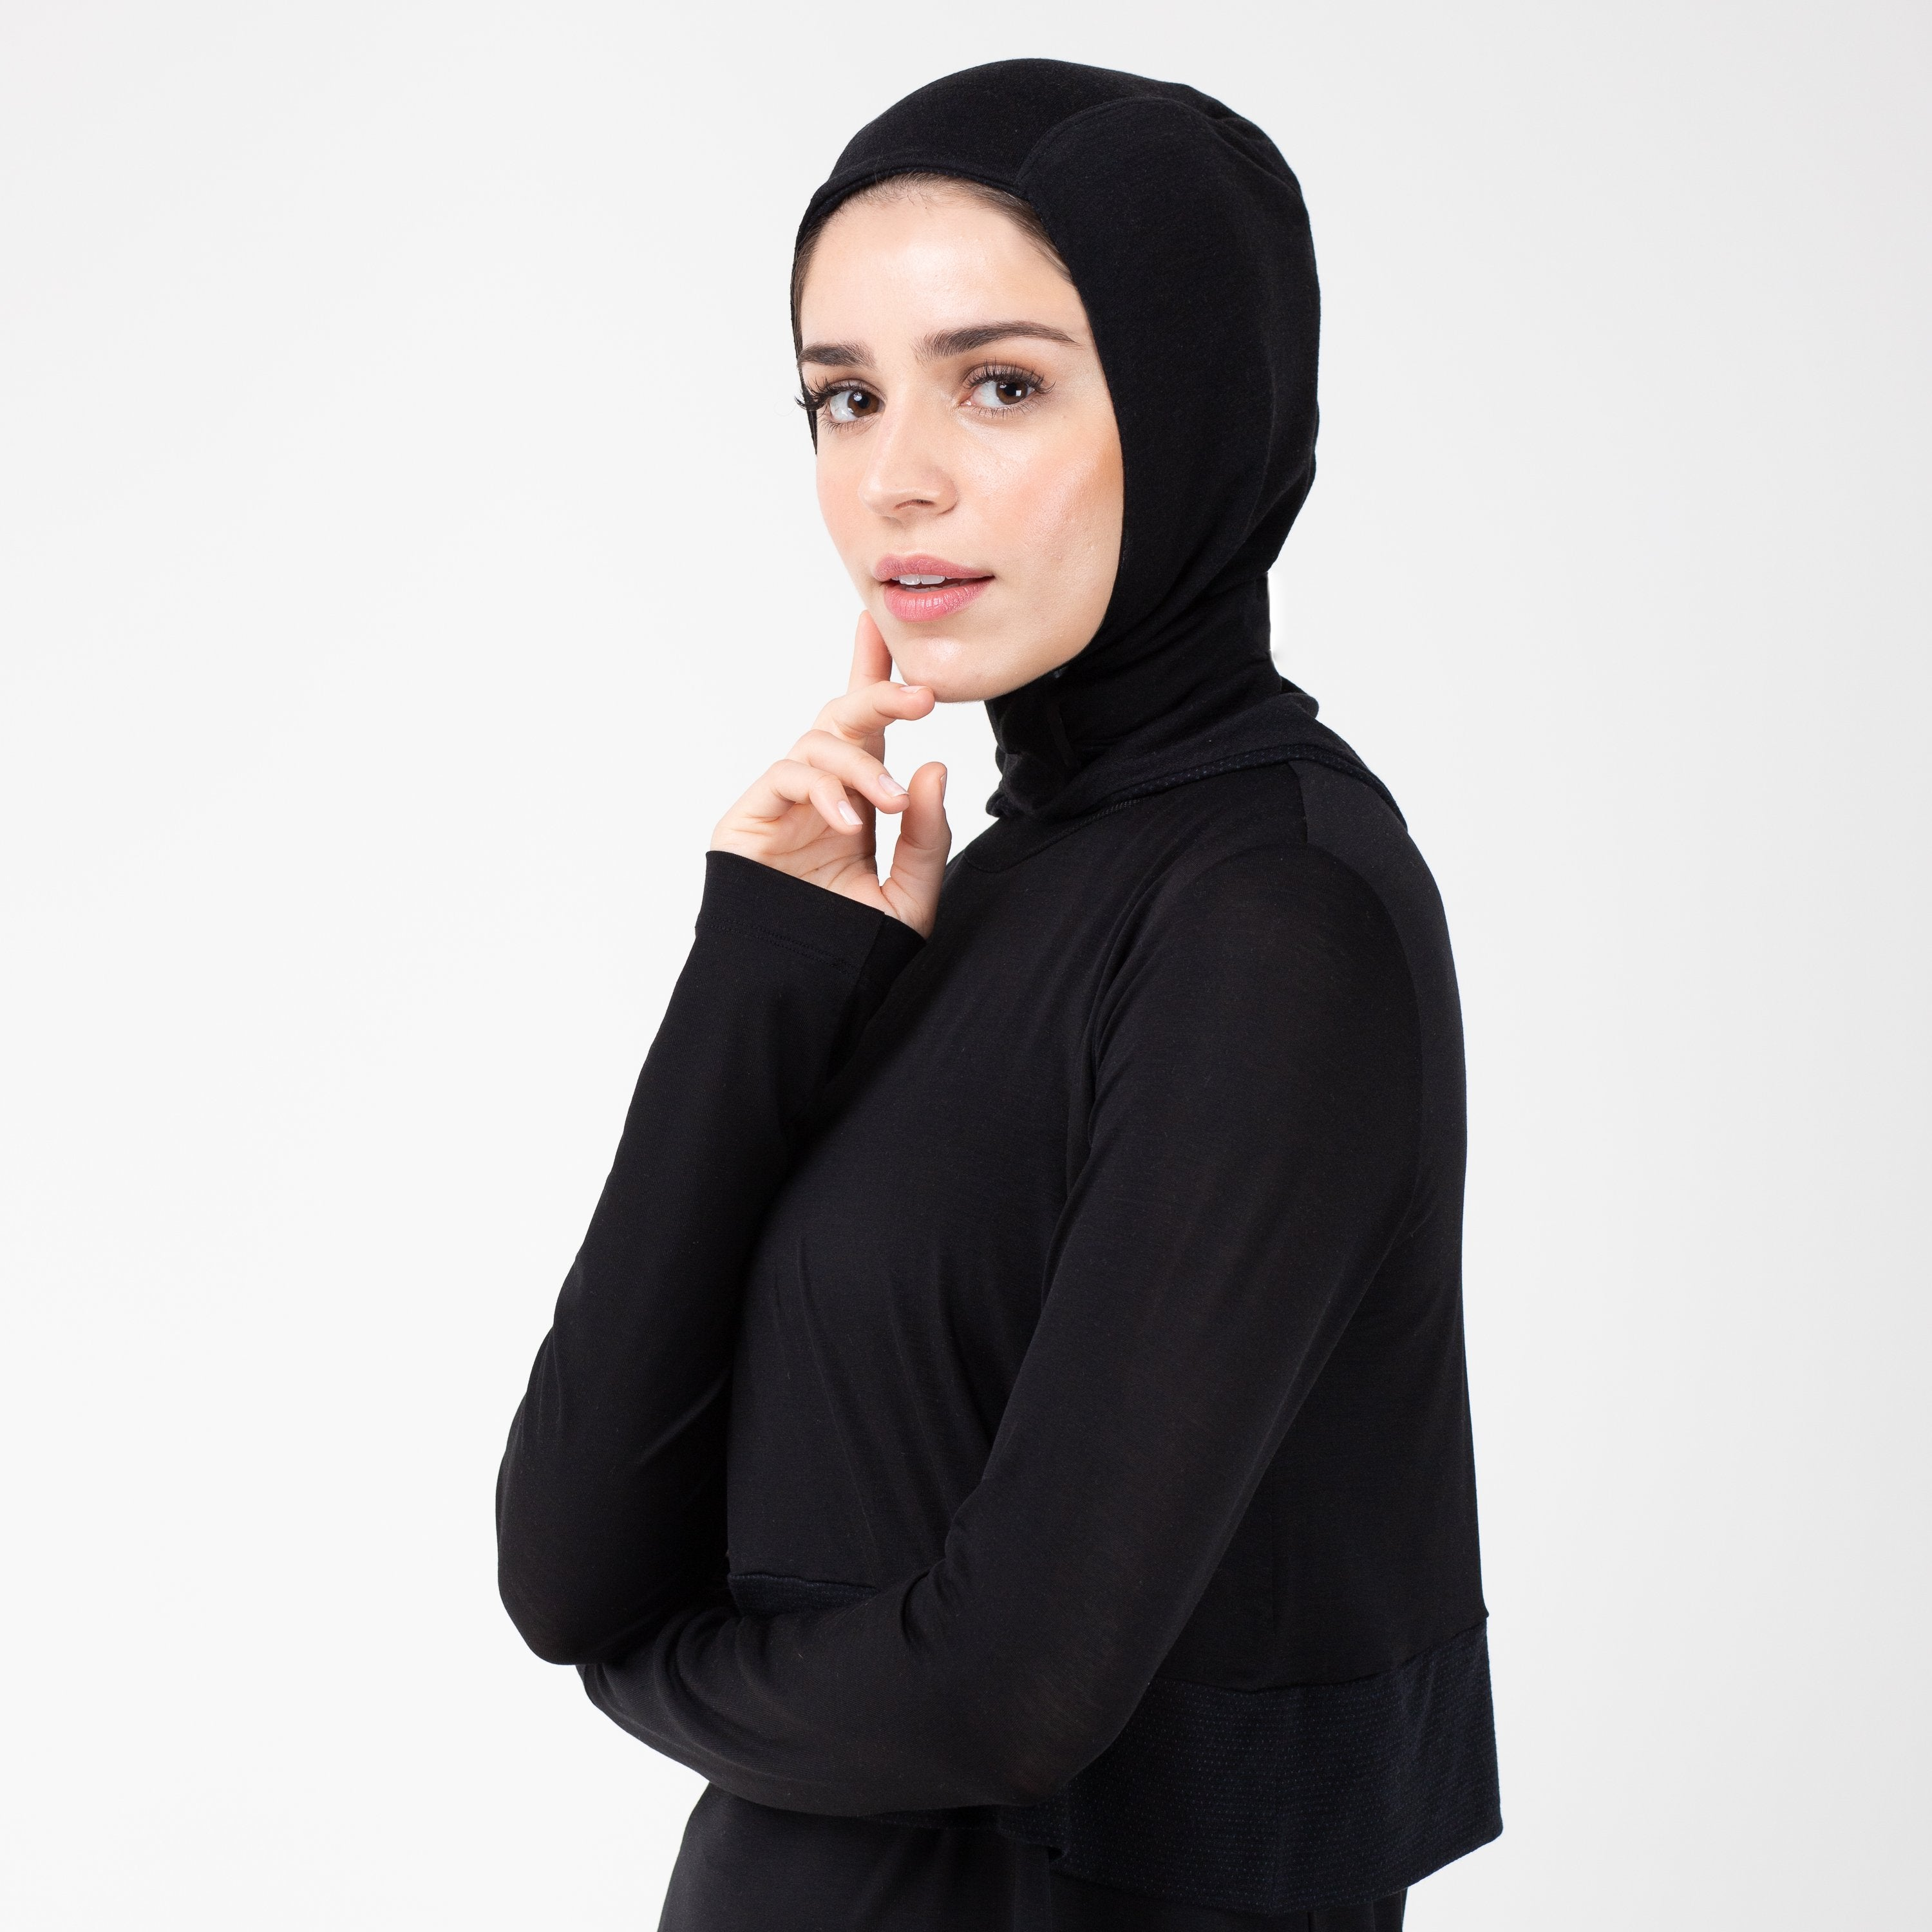 Woman turned to the left wearing a black shirt with a matching black HAWA hijab touching her face with her right hand.